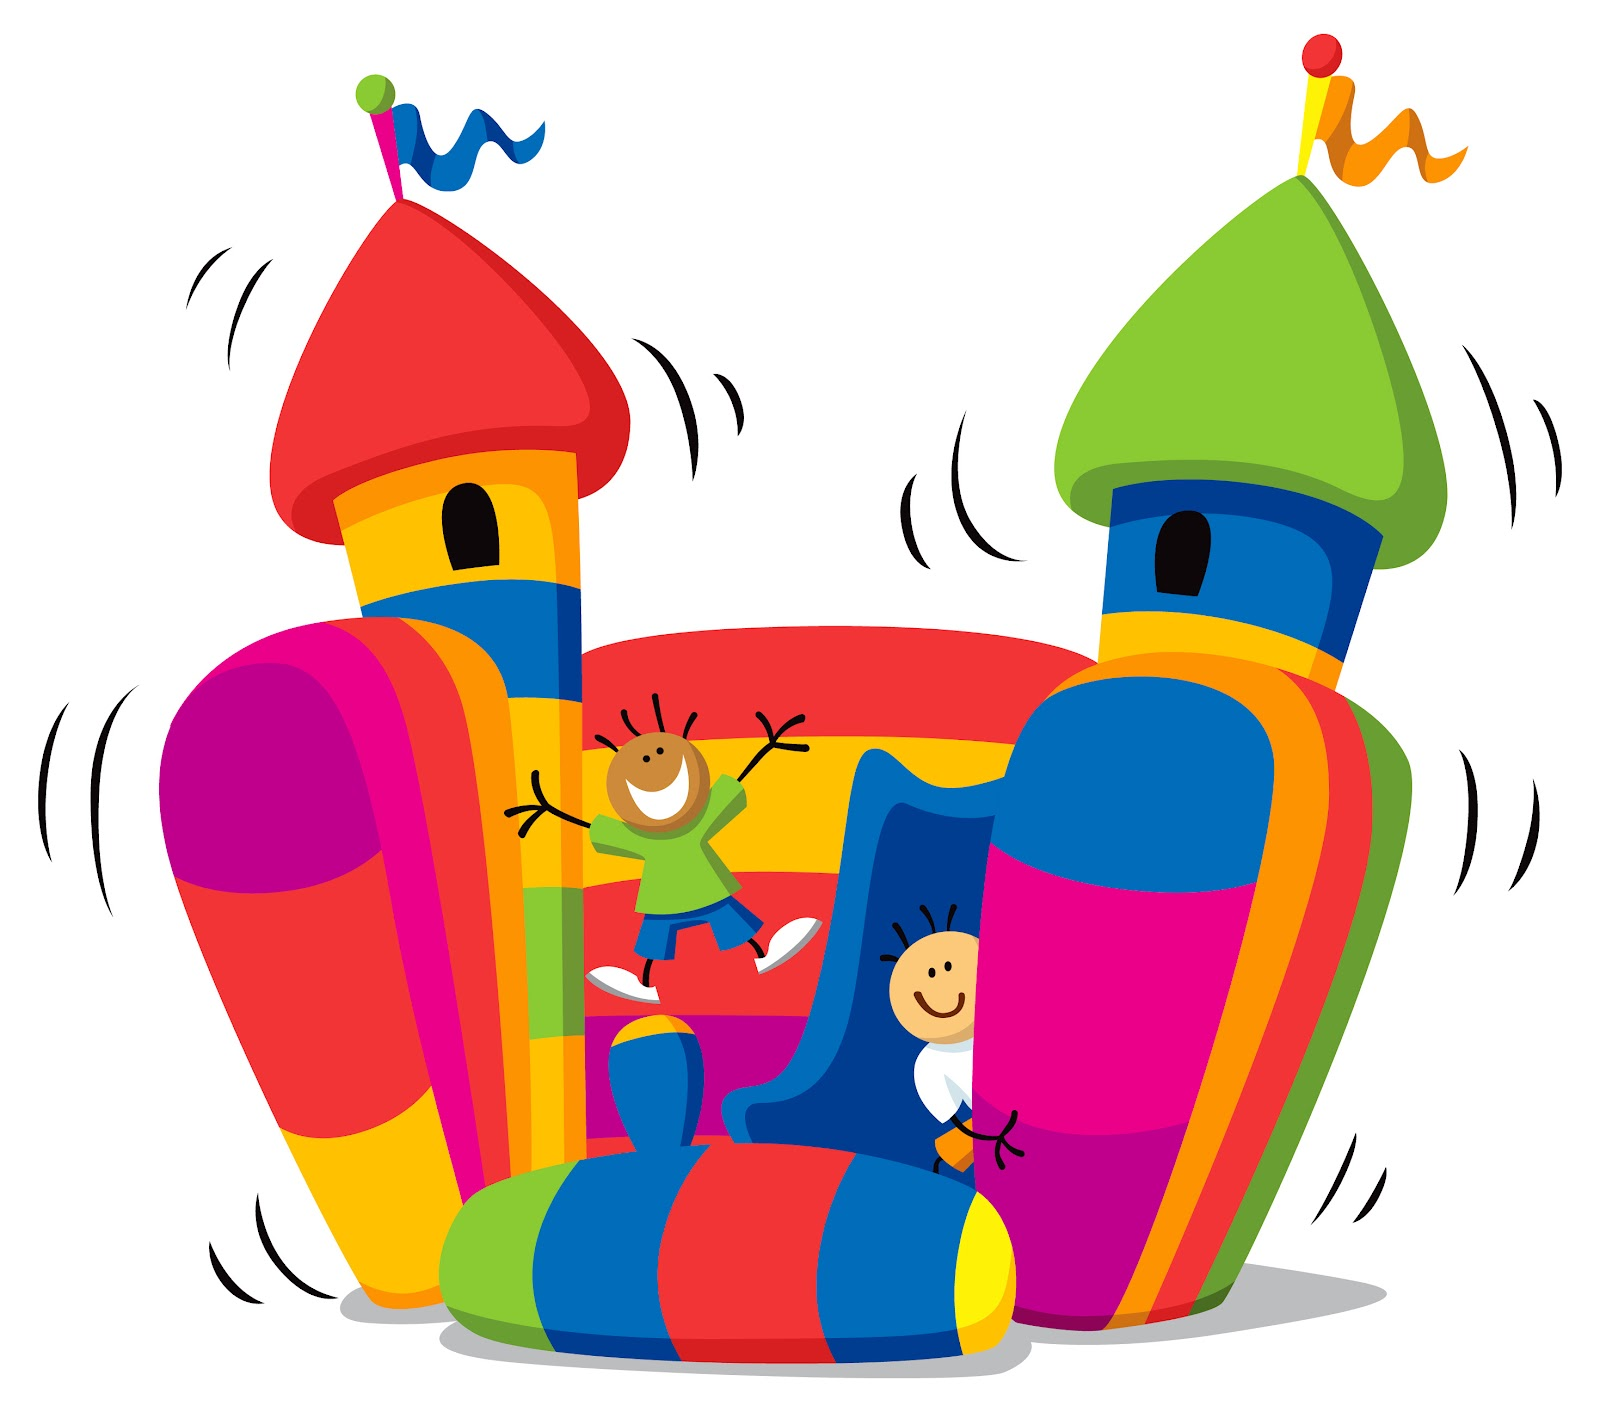 hight resolution of bouncy castle clipart bounce house clip art